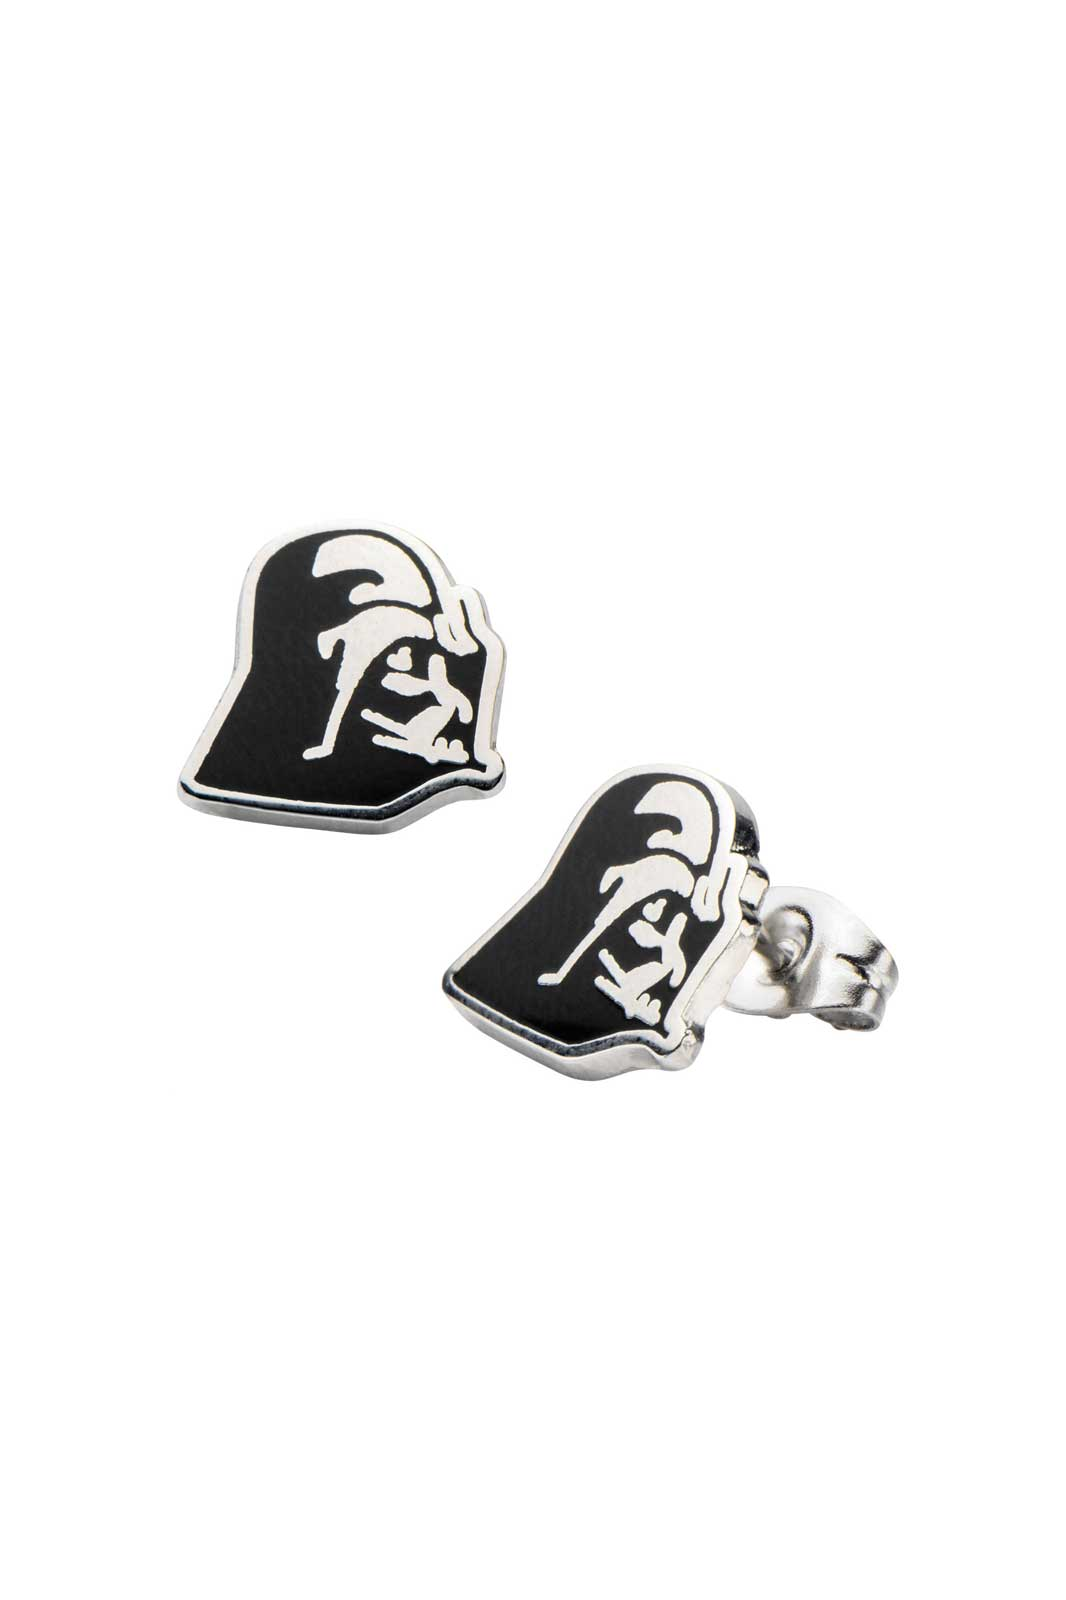 Earrings Dart Vader